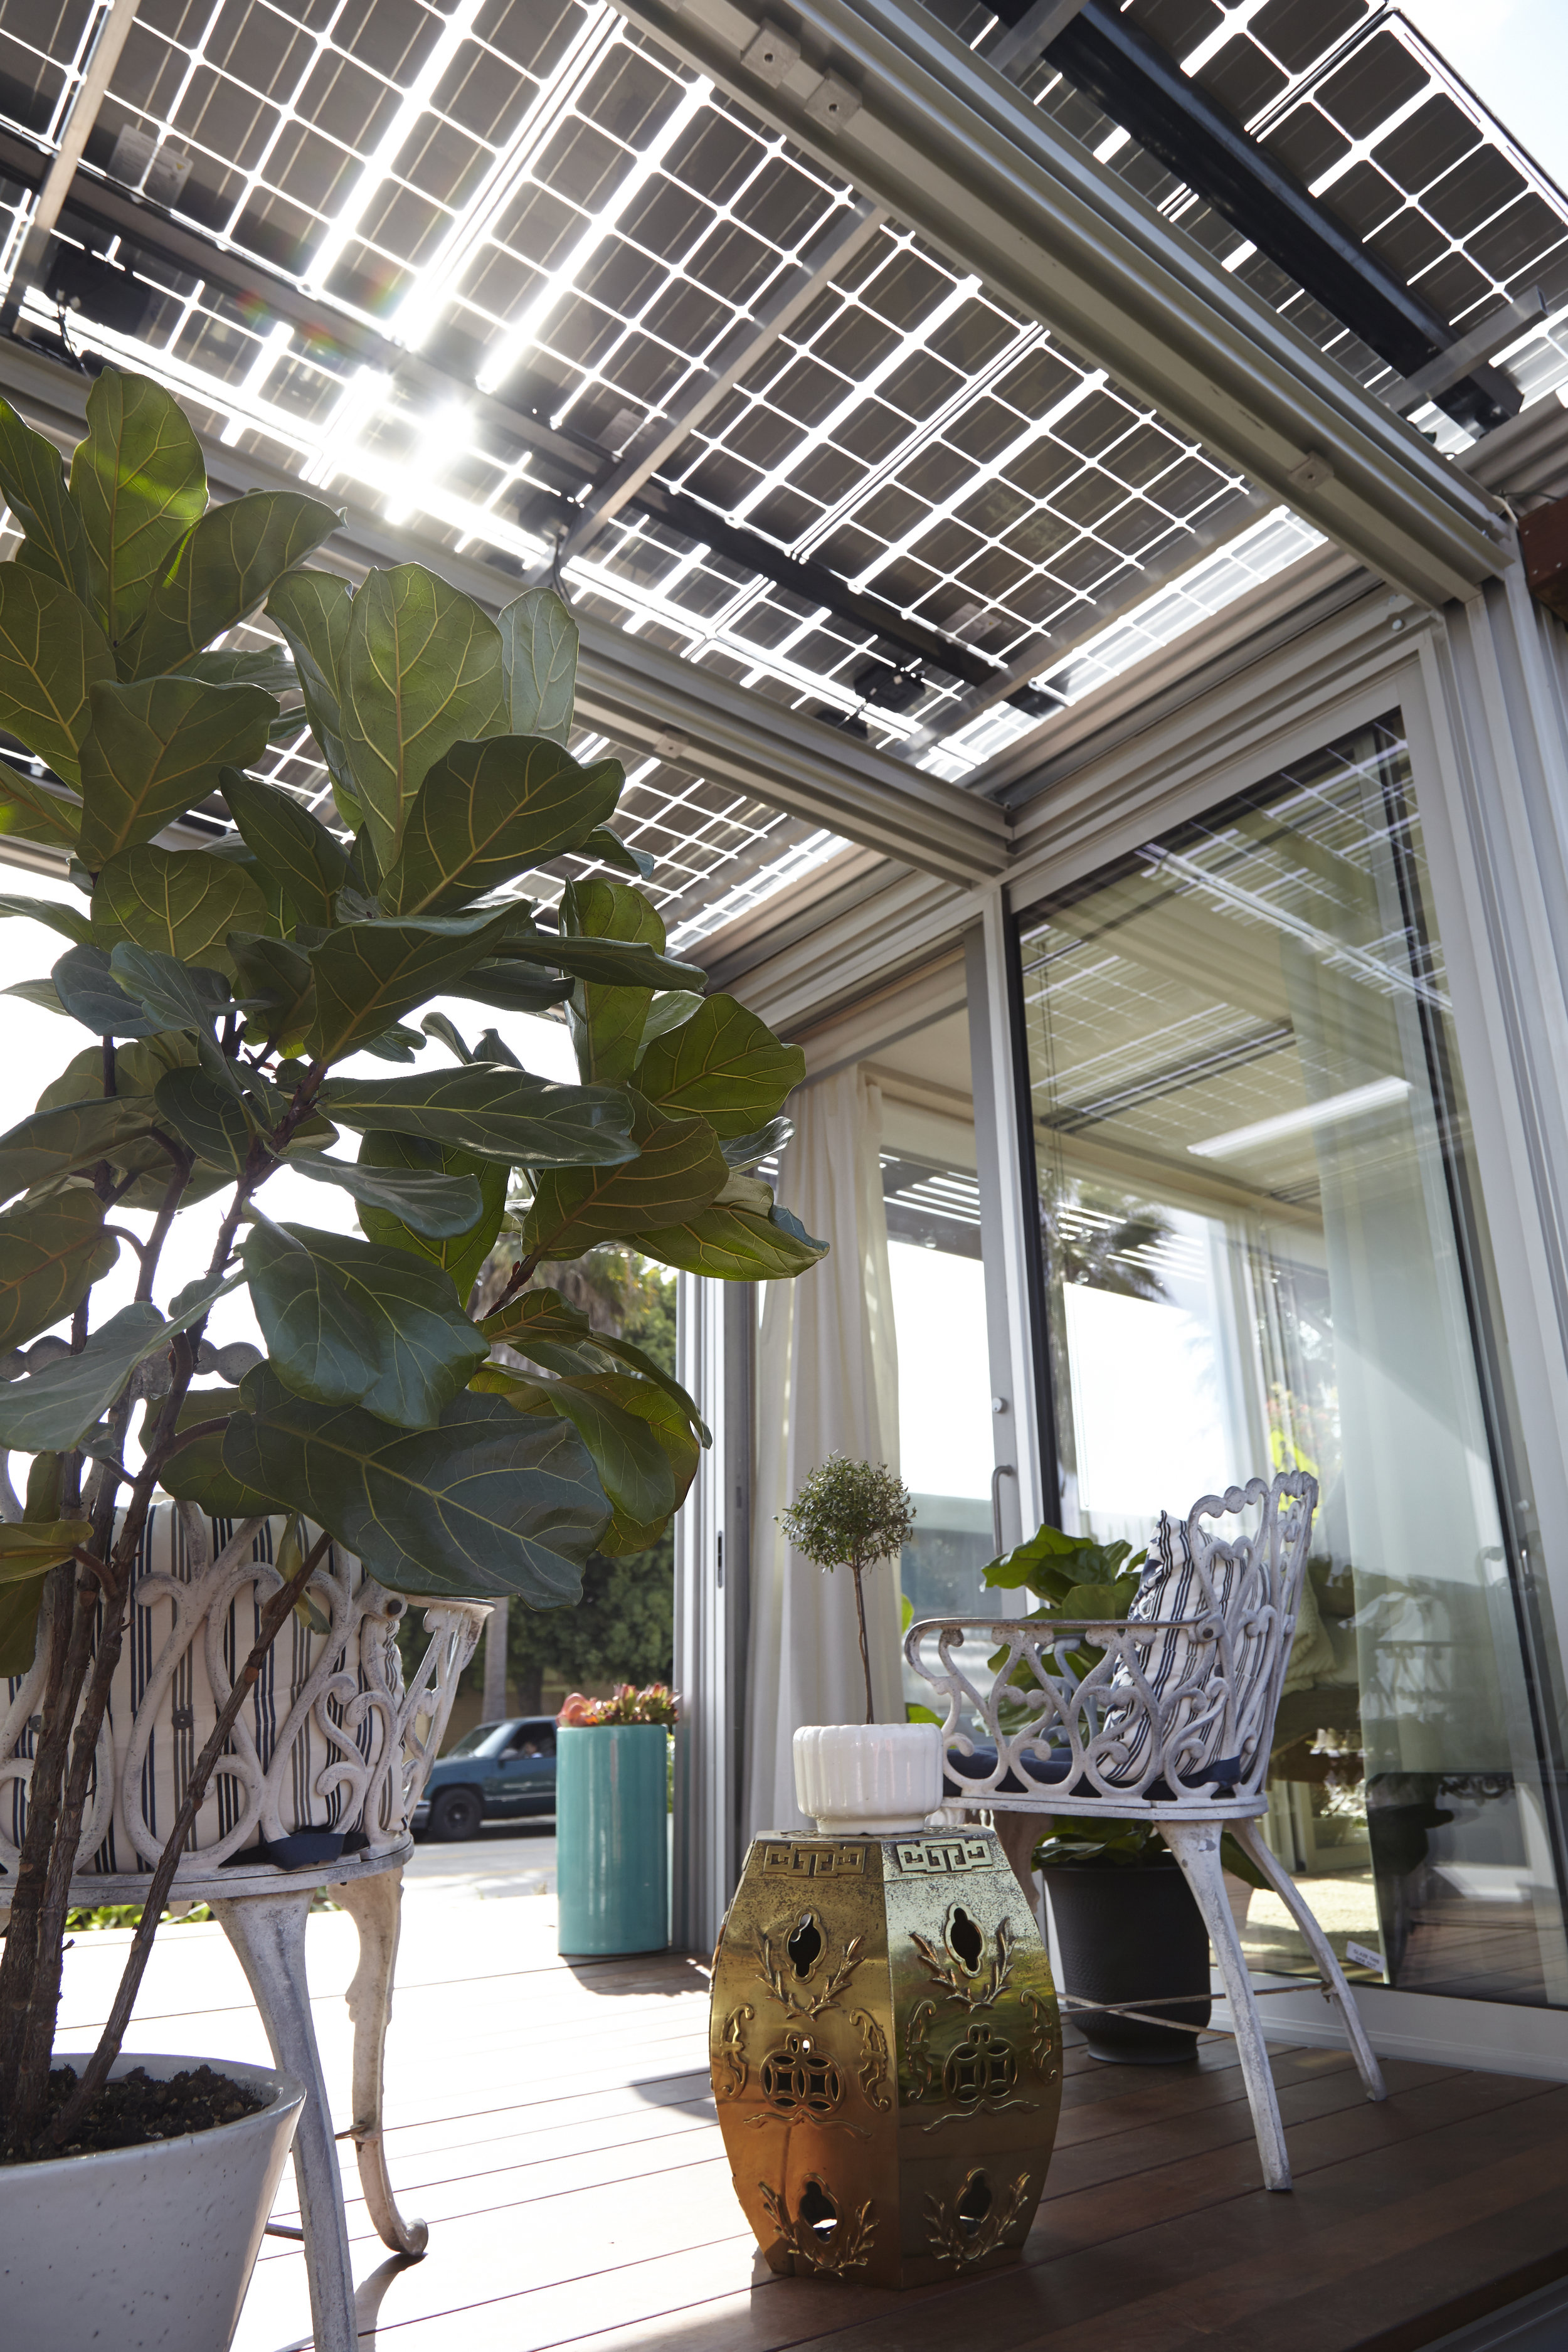 S.E.A.-Studio-Environmental-Architecture-David-Hertz-FAIA-Airbnb-Ecopod-Venice-Beach-California-sustainable-regenerative-restorative-green-design-passive-systems-natural-ventilation-radiant-solar-panels-greenwall-installation-Abbot-Kinney-modern-7.jpg